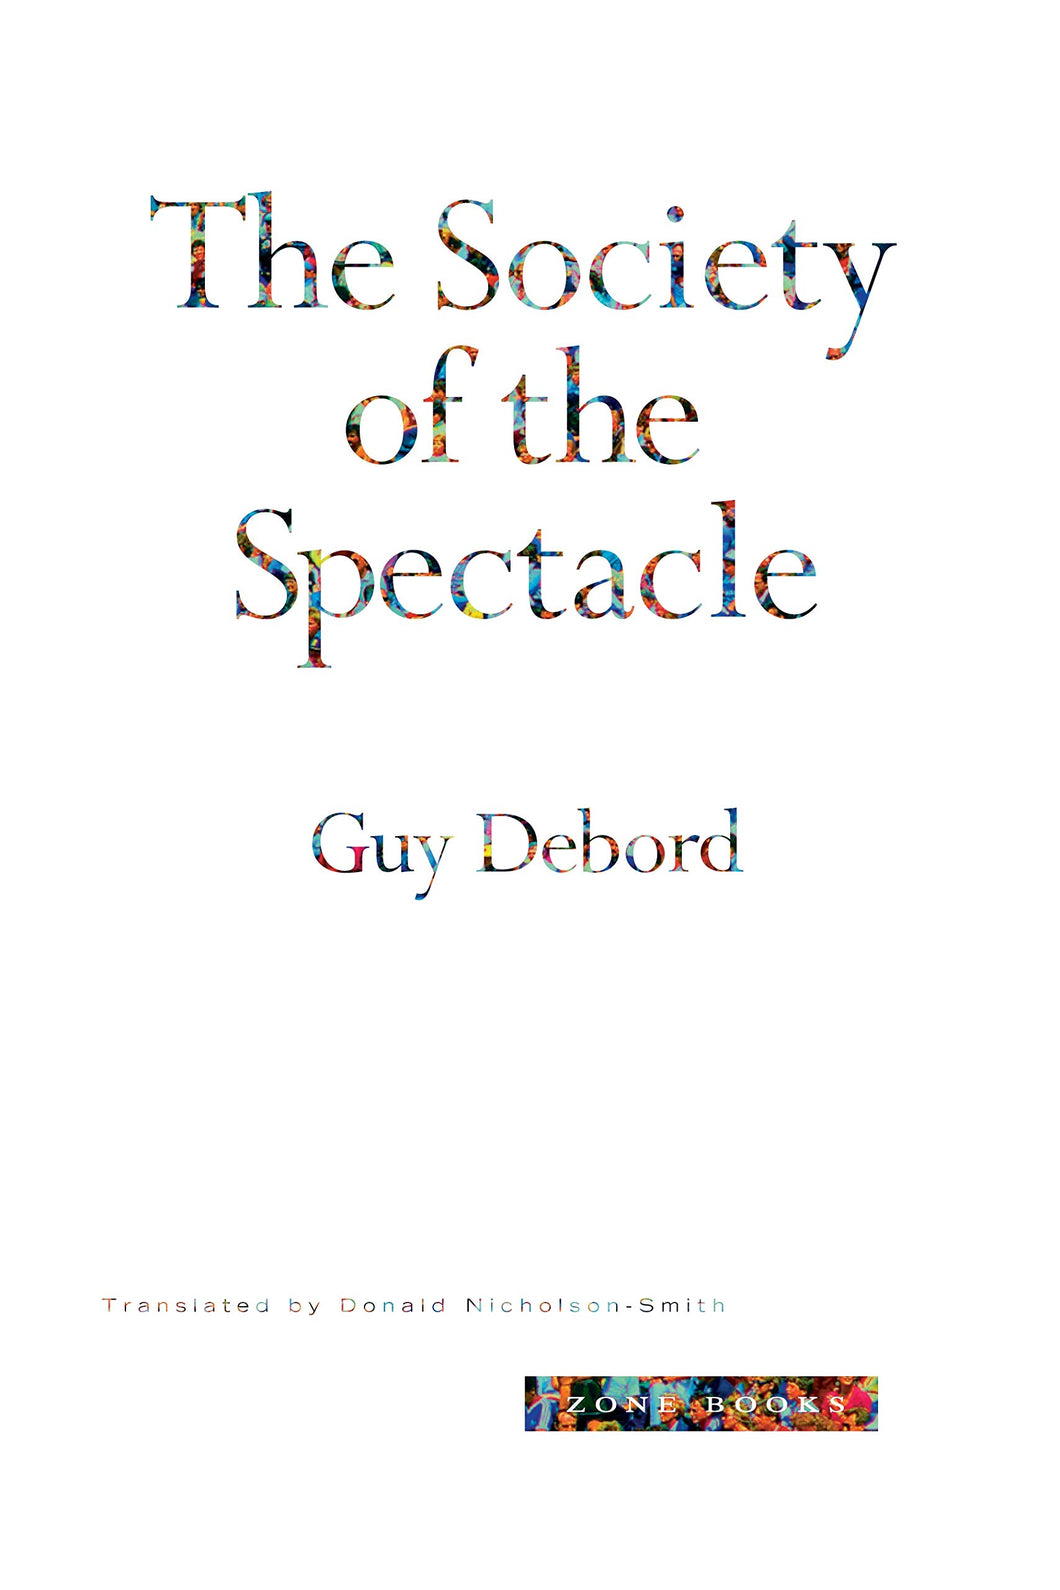 The Society of the Spectacle (Revised Edition) by Guy Debord